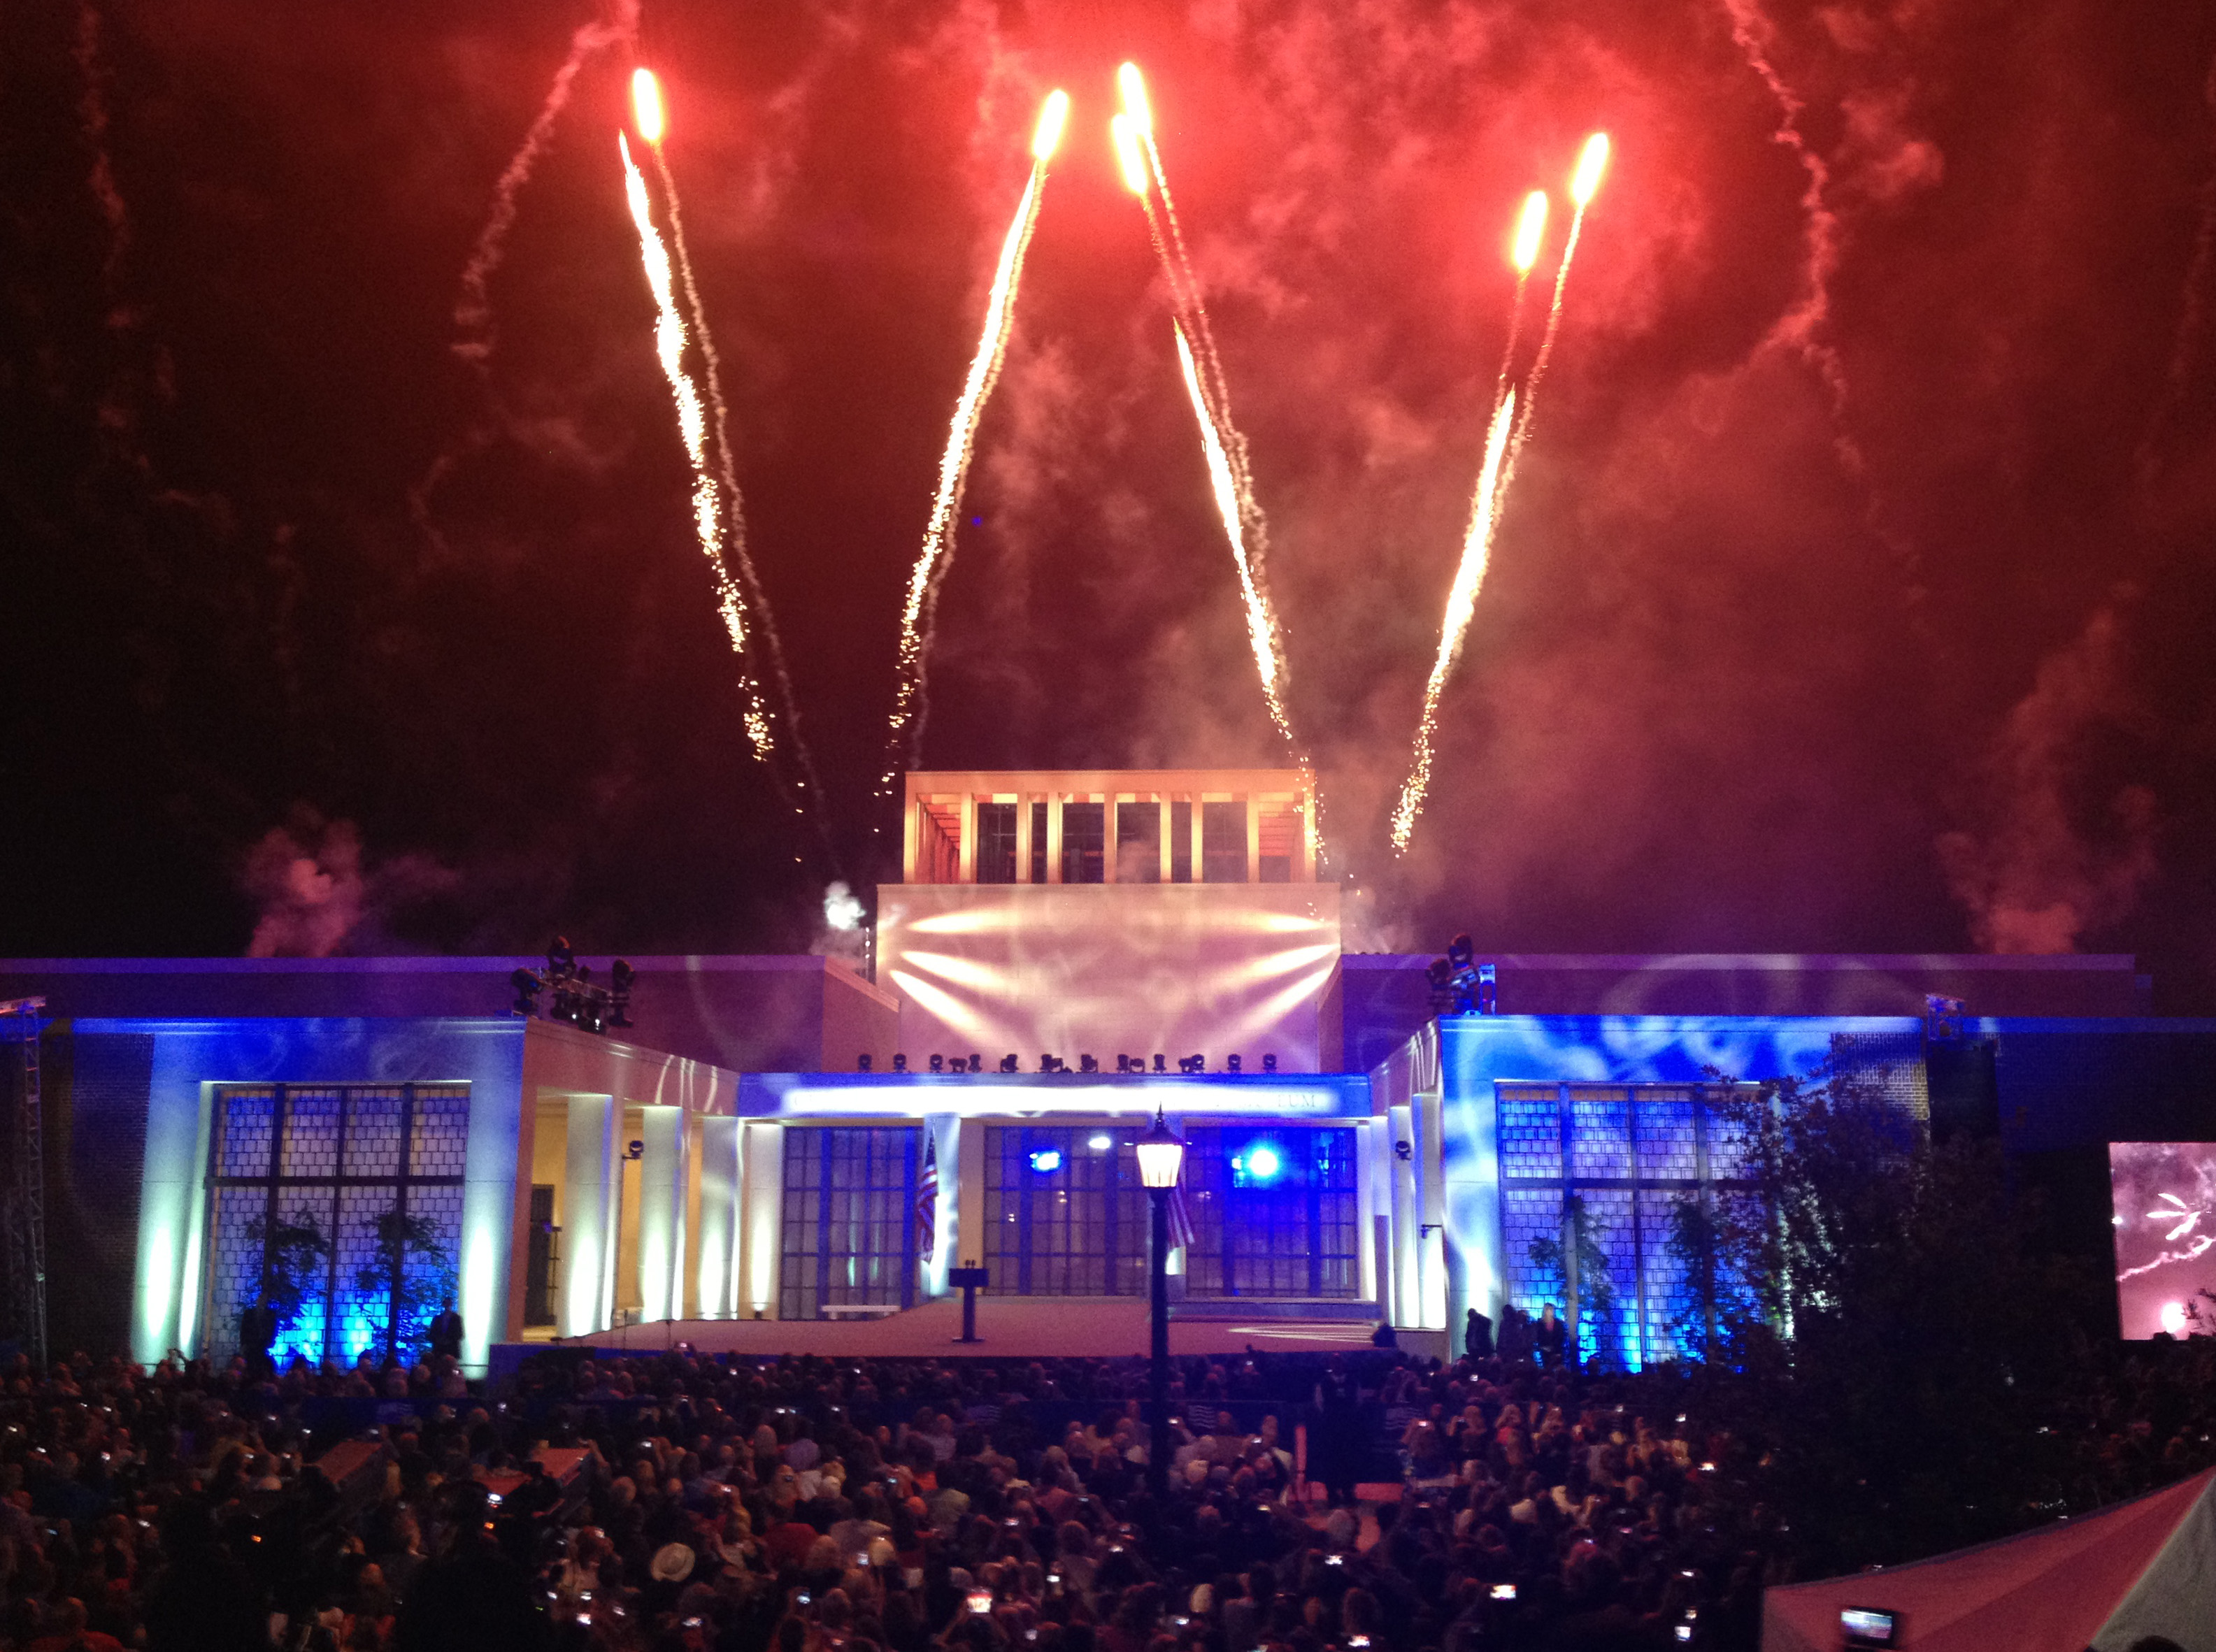 Fireworks form a W at SMU's Block Party celebrating the dedication of the George W. Bush Presidential Center.